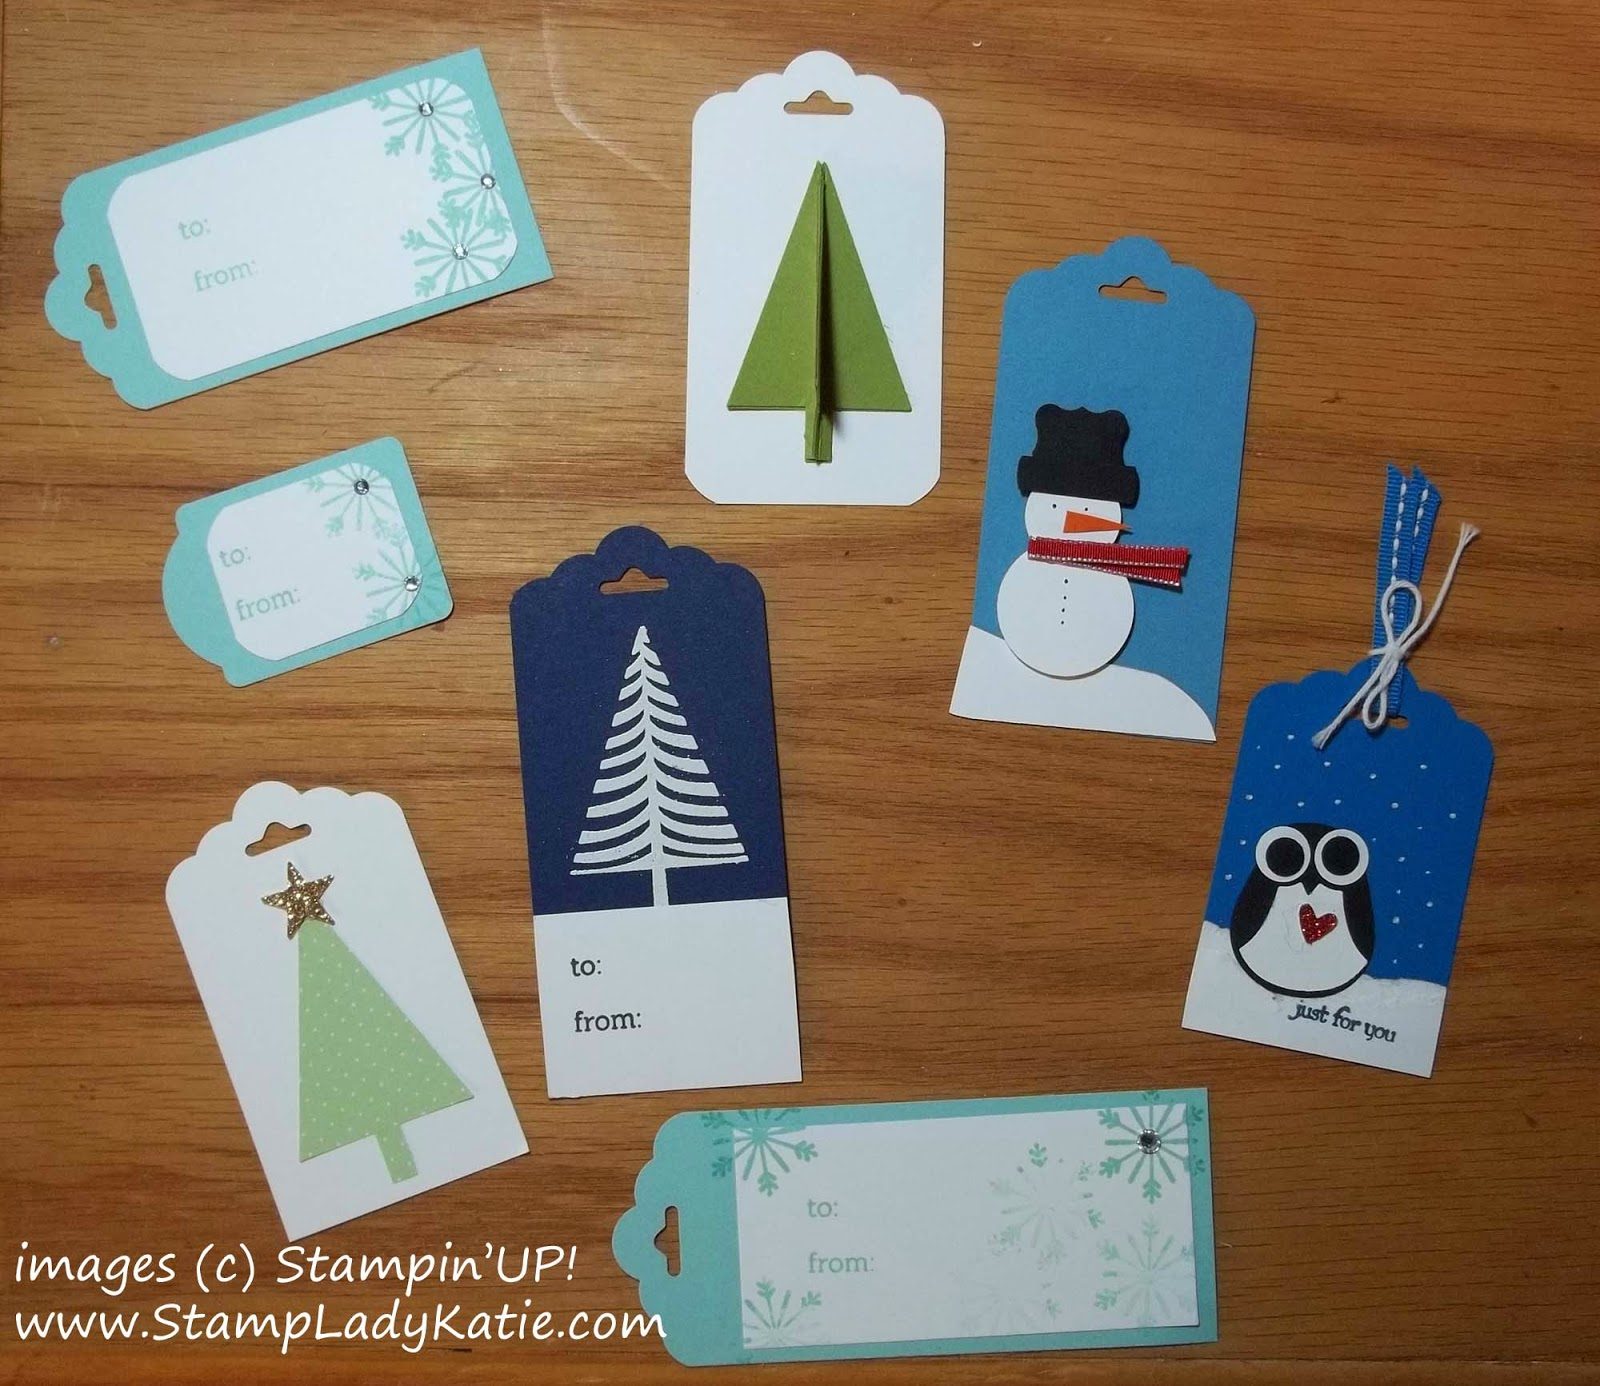 Samples of Holiday Gift Tags